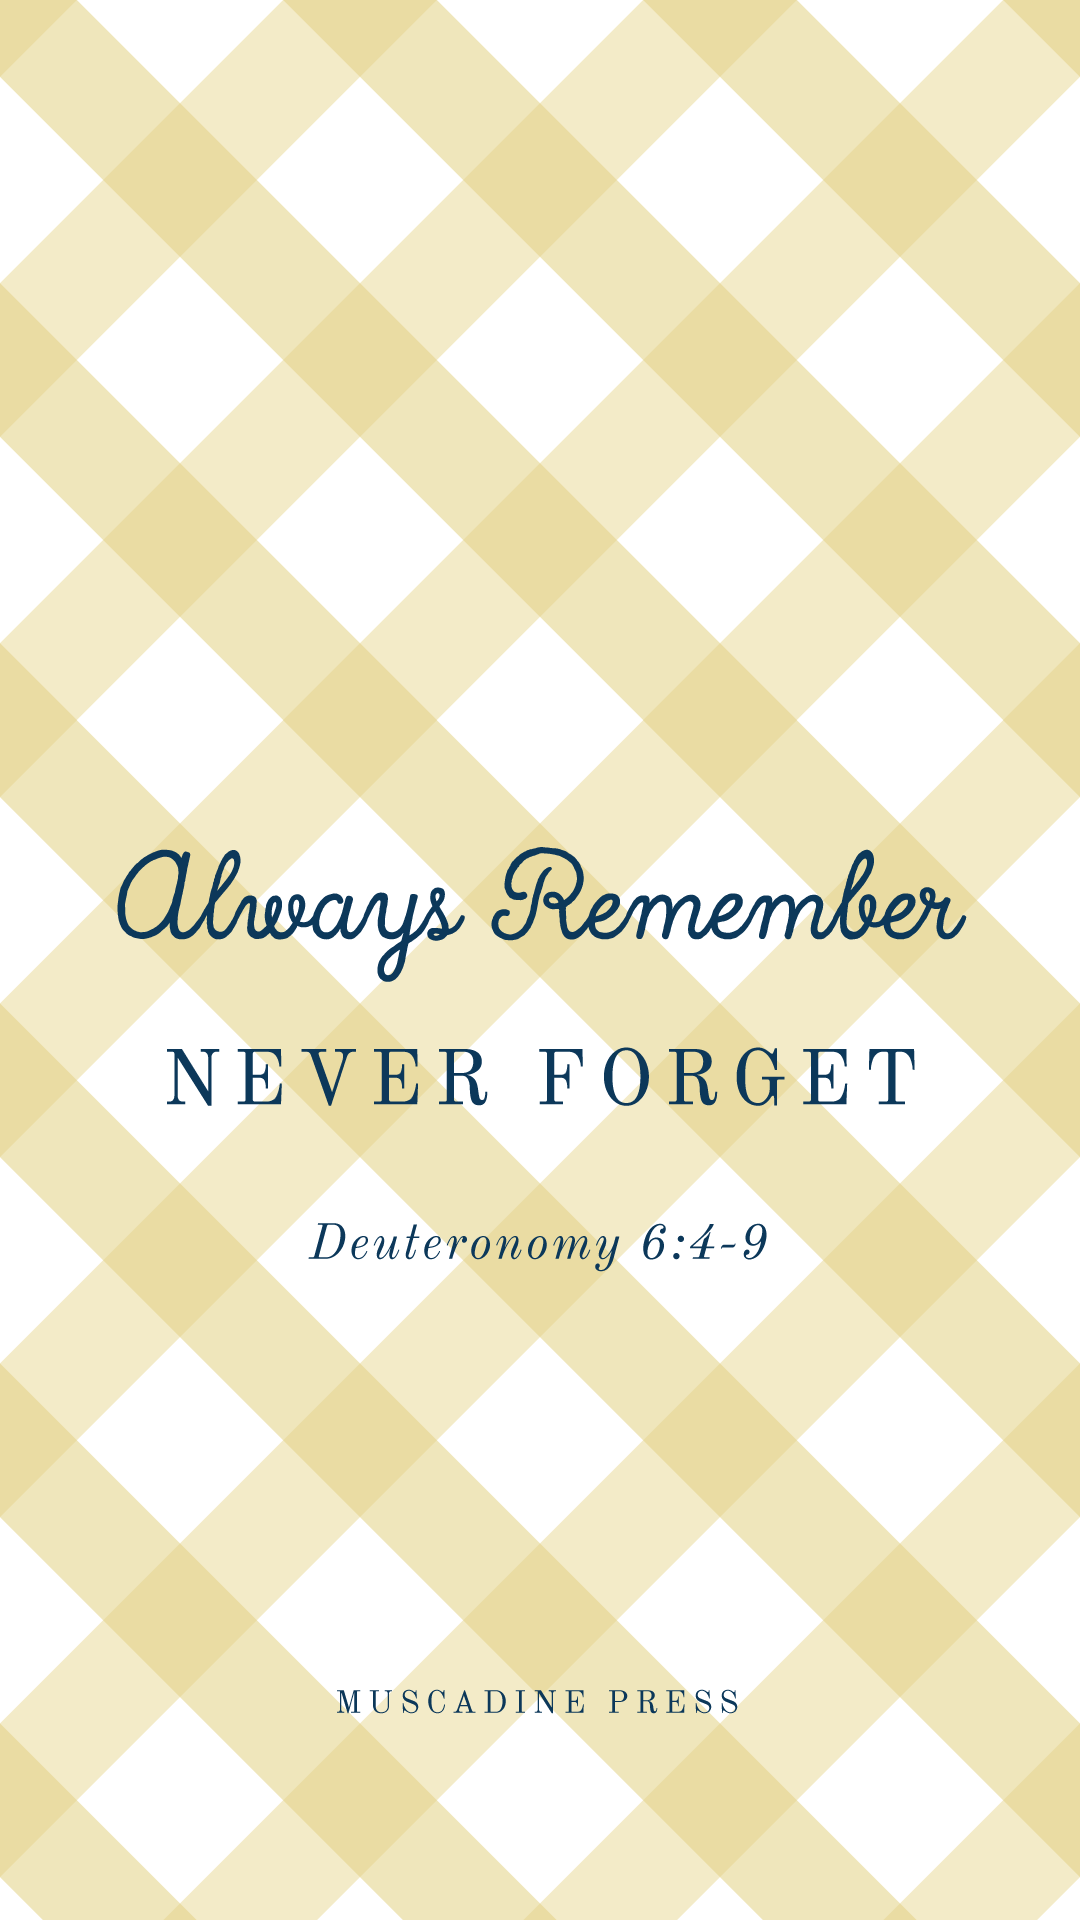 Always remember. Never forget. Free inspirational lock screens from Muscadine Press.